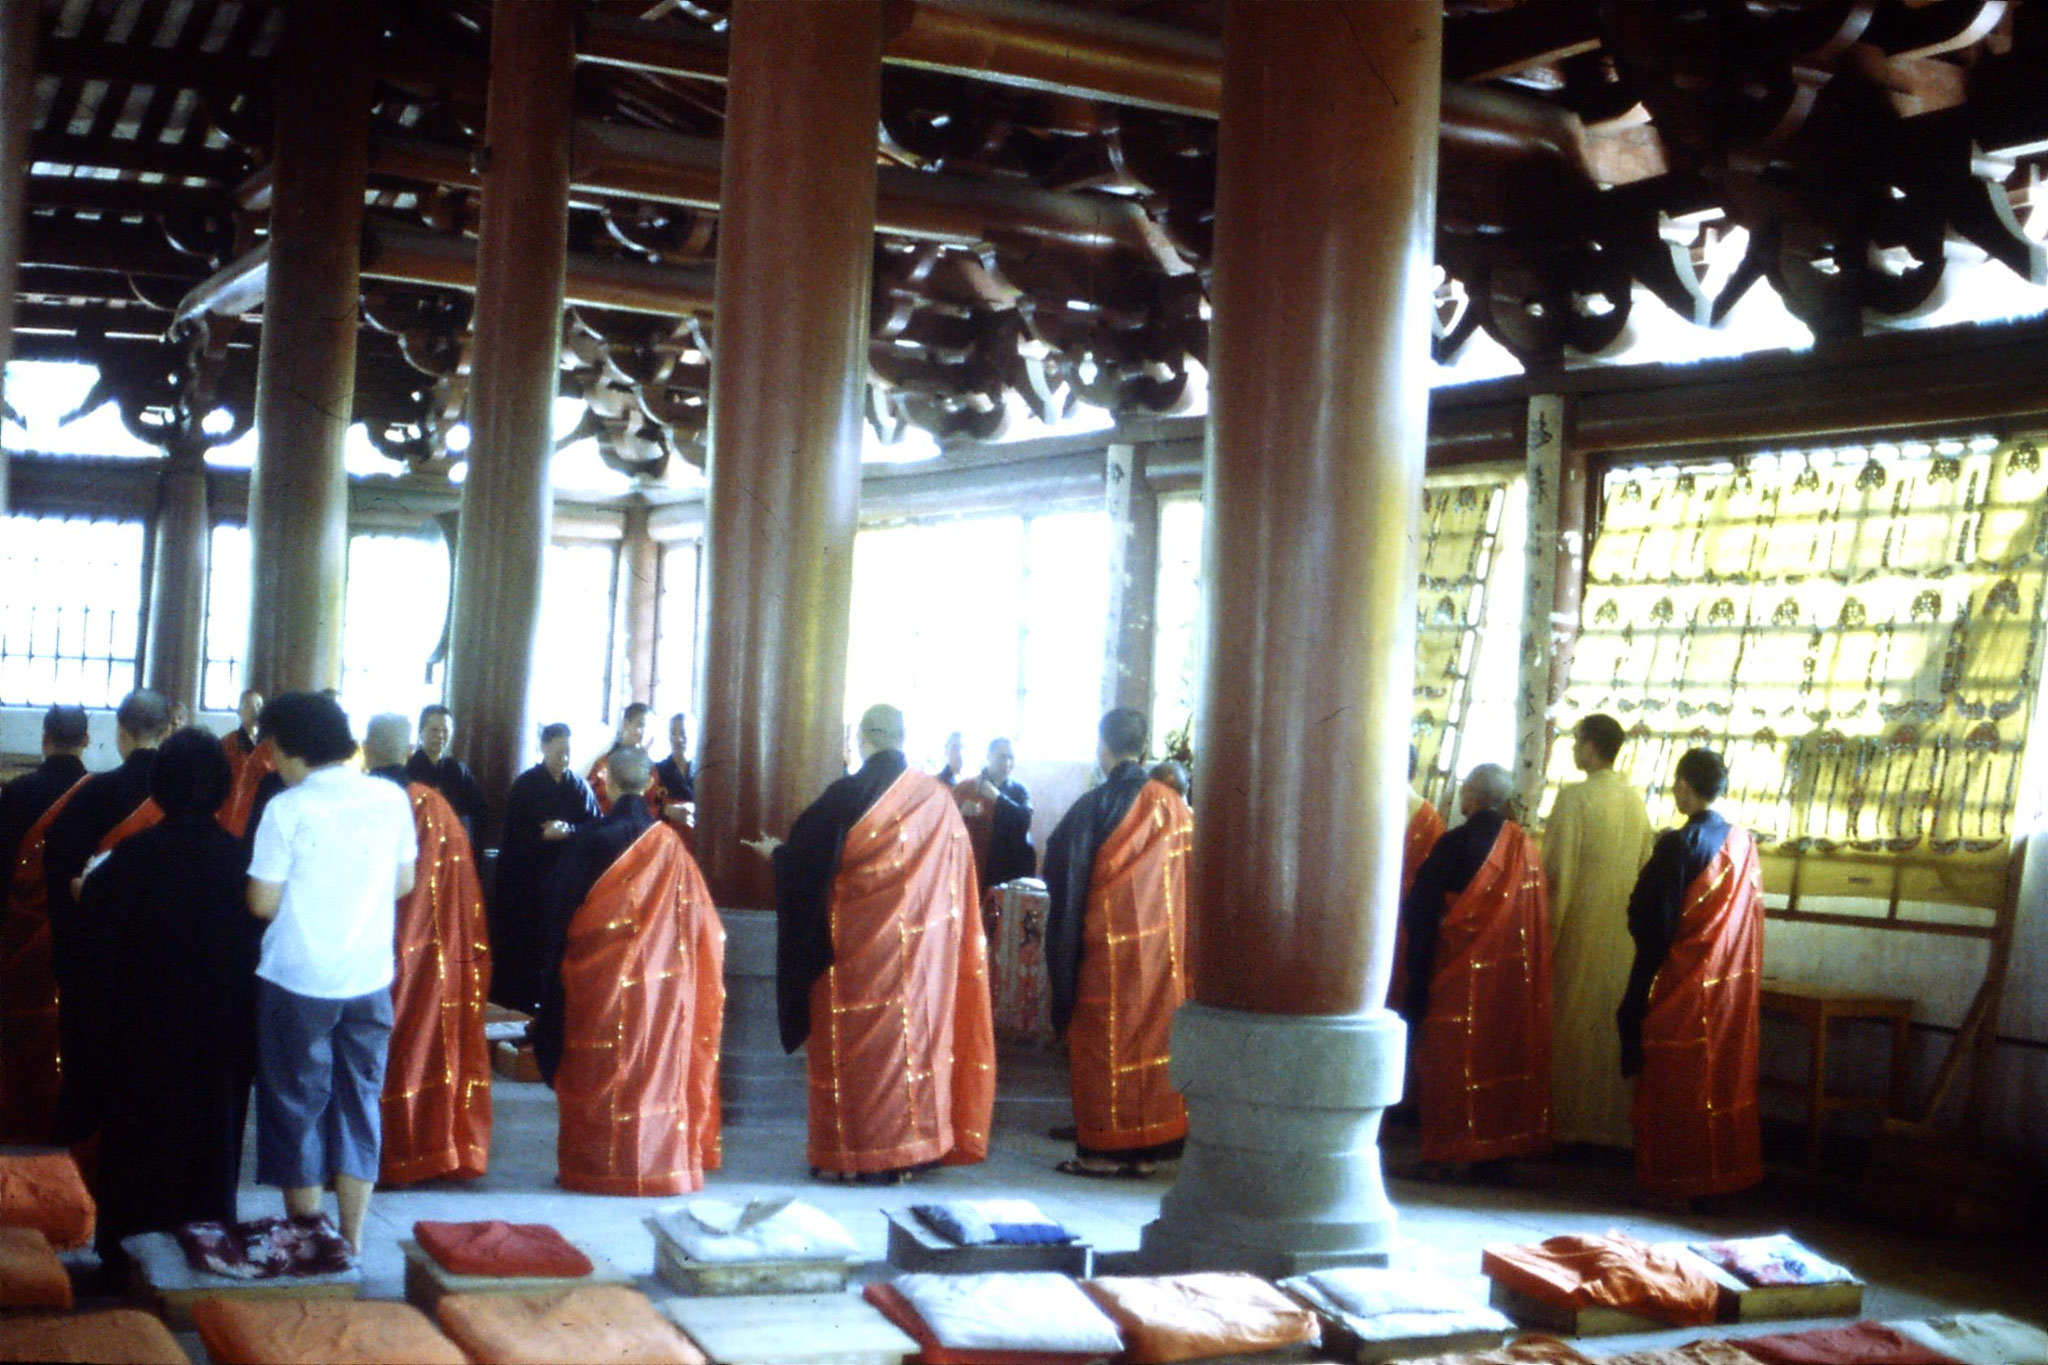 18/5/1989: 1: Guangzhou Filial Piety Temple ceremony